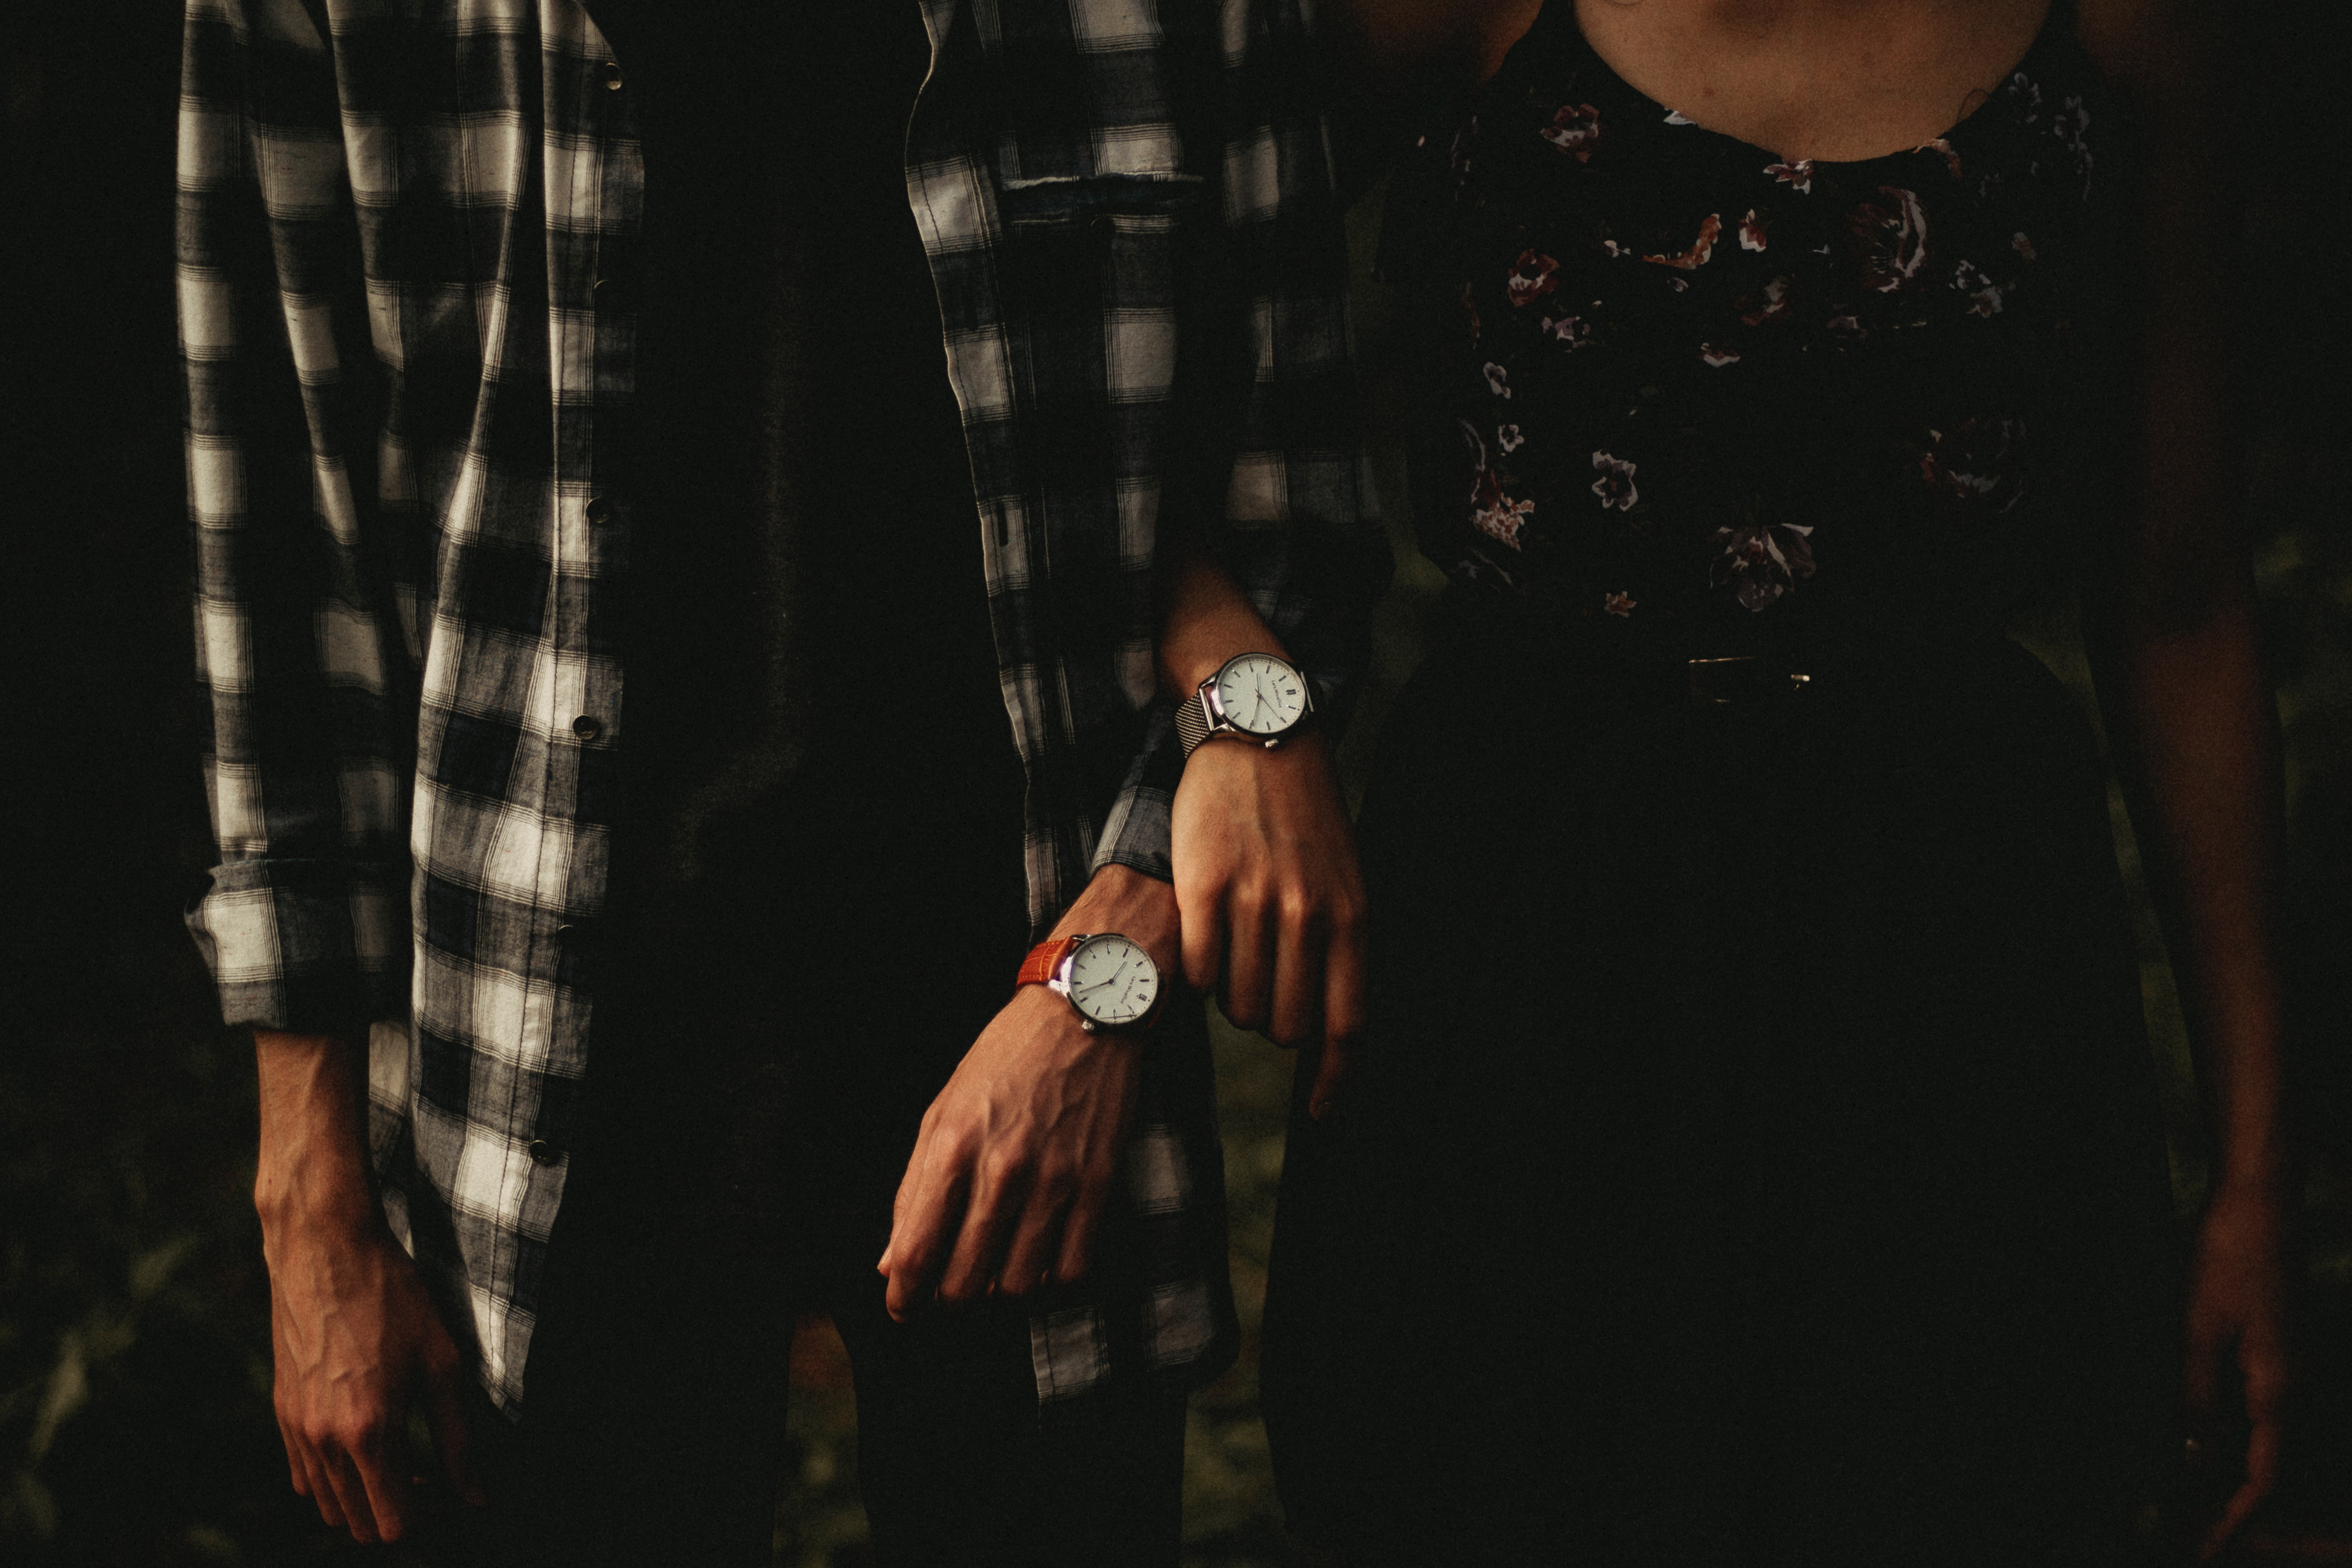 86942 Screensavers and Wallpapers Wrist Watch for phone. Download Miscellanea, Miscellaneous, Couple, Pair, Hands, Wrist Watch, Wristwatch pictures for free